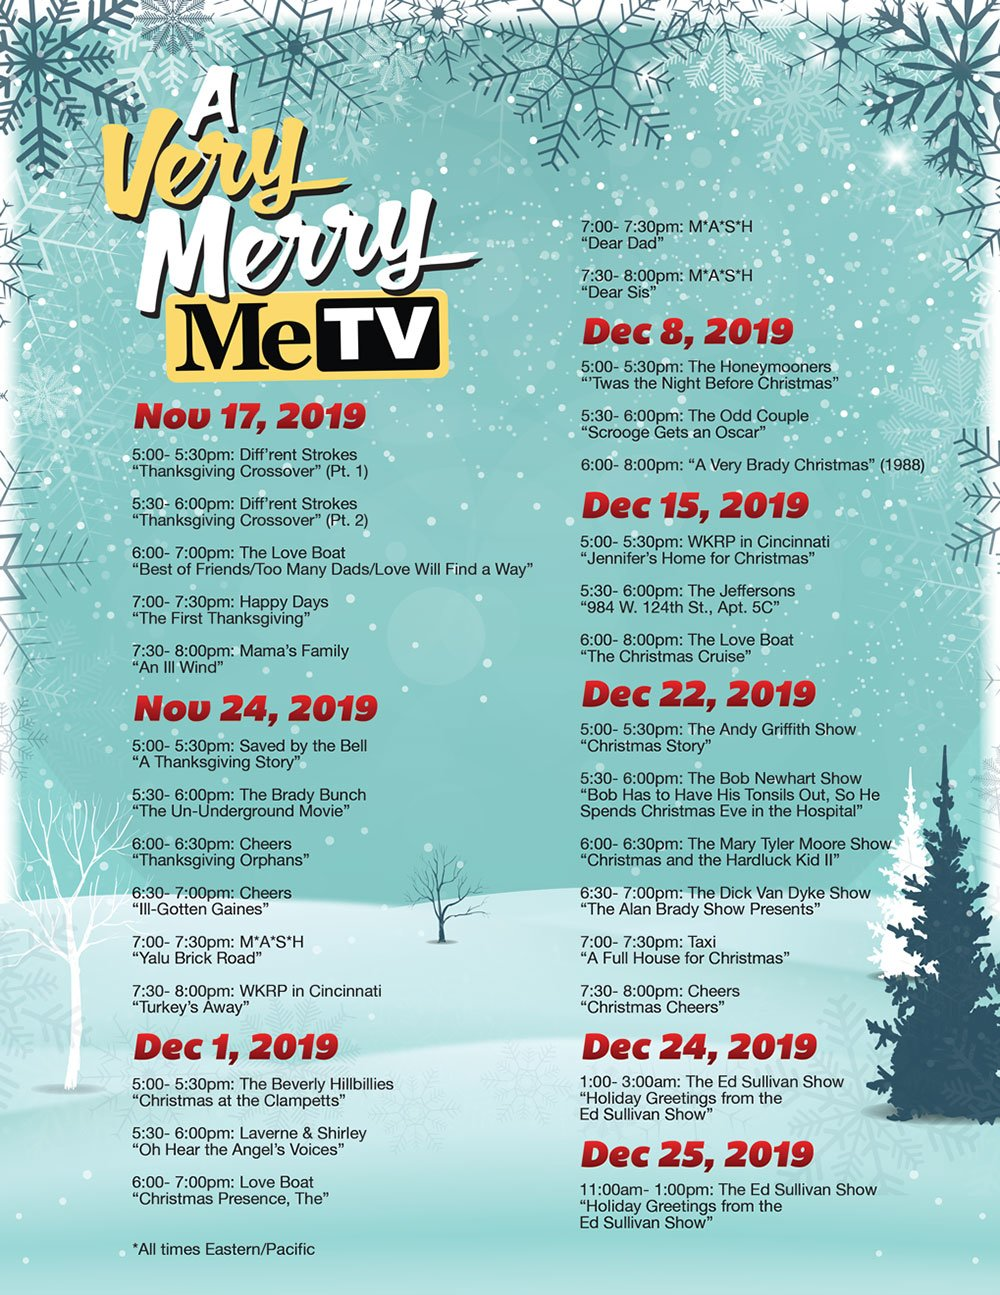 Metv Christmas Schedule 2020 Watch classic holiday episodes and specials all season with A Very